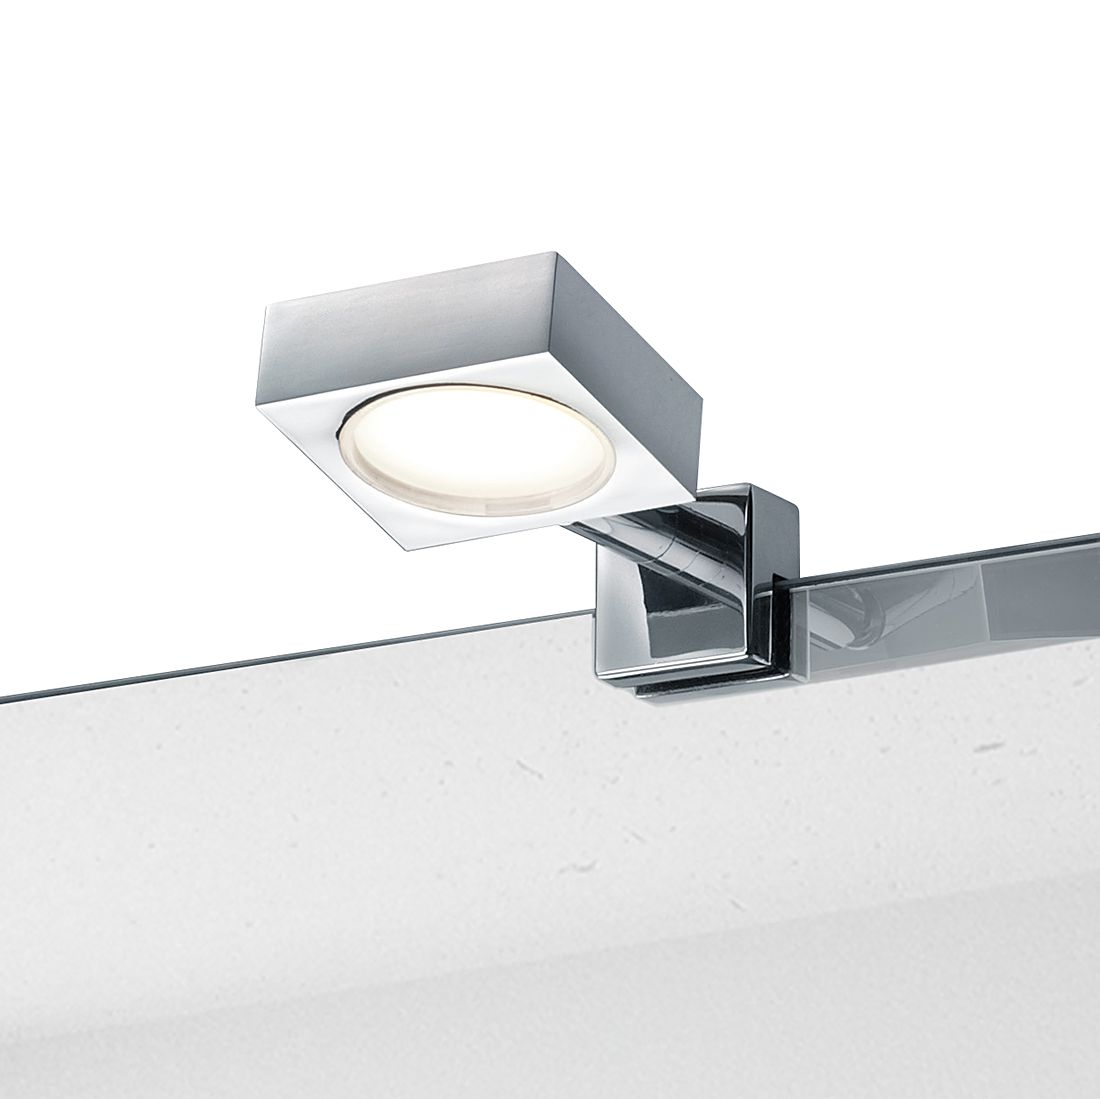 LED-Wandleuchte ● Metall ● Chrom ● 1-flammig- Lux A+